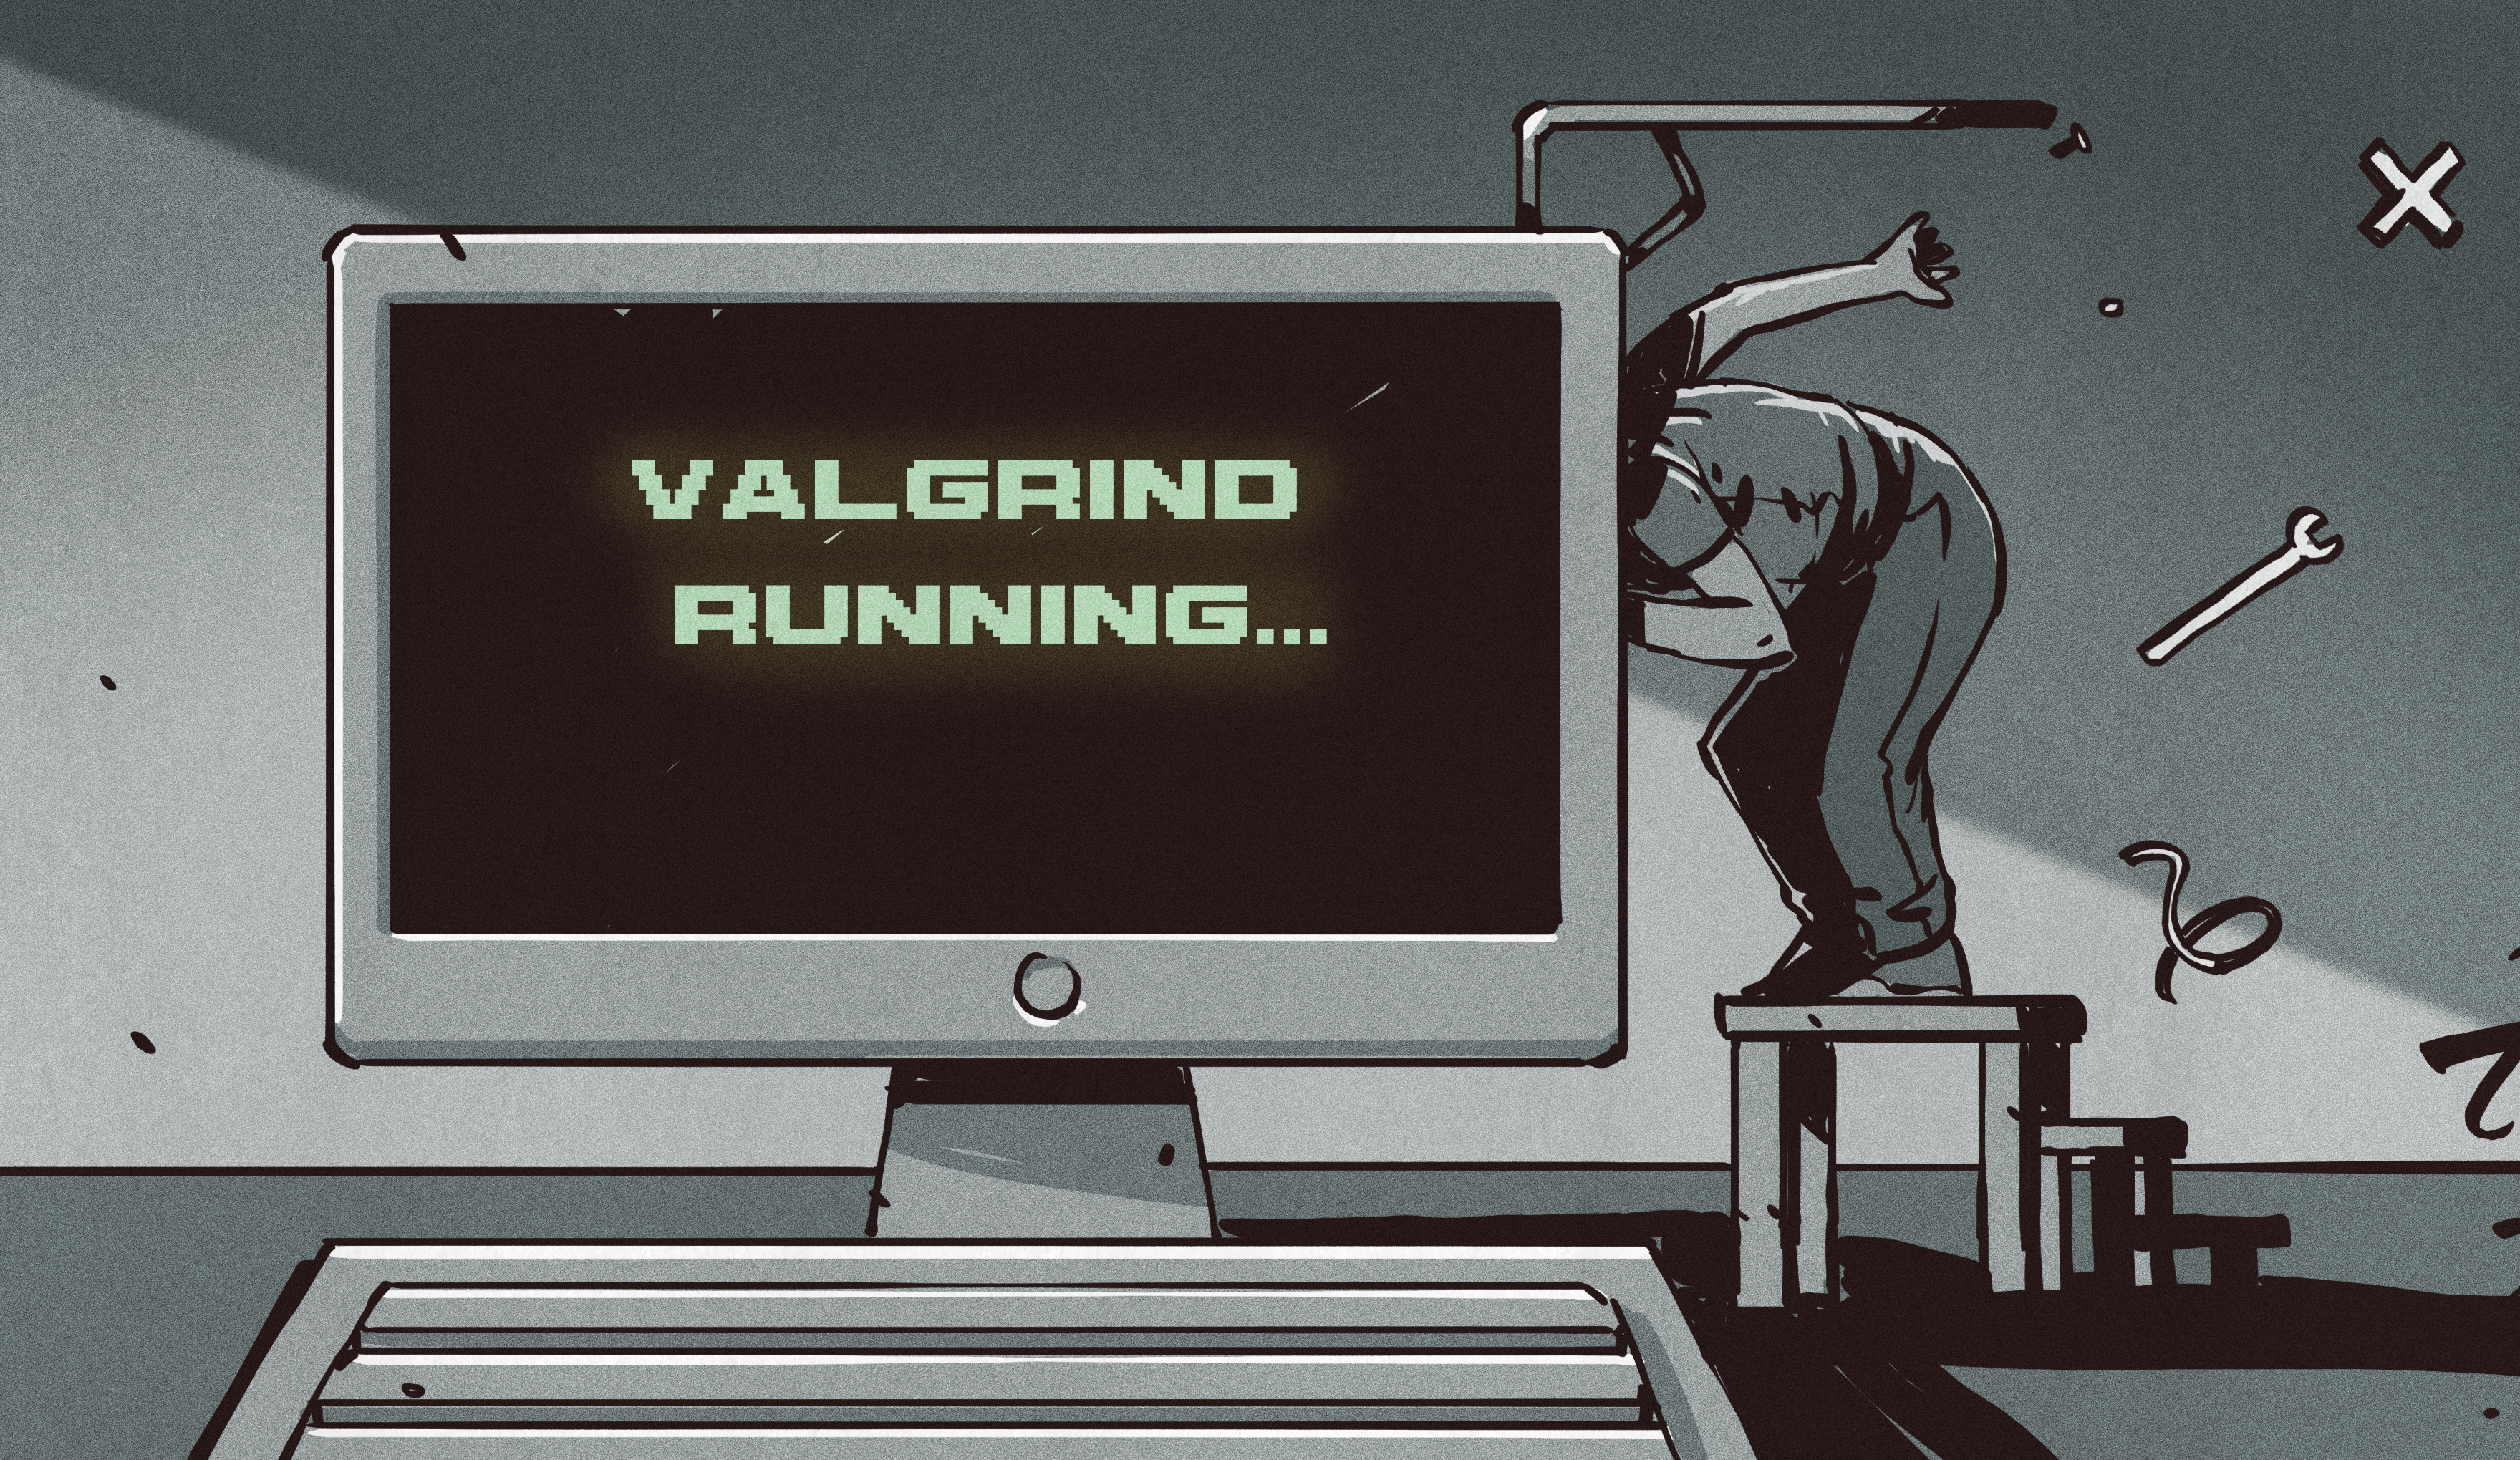 Using Valgrind To Analyze Code For Bottlenecks Makes Faster, Less Power-Hungry Programs